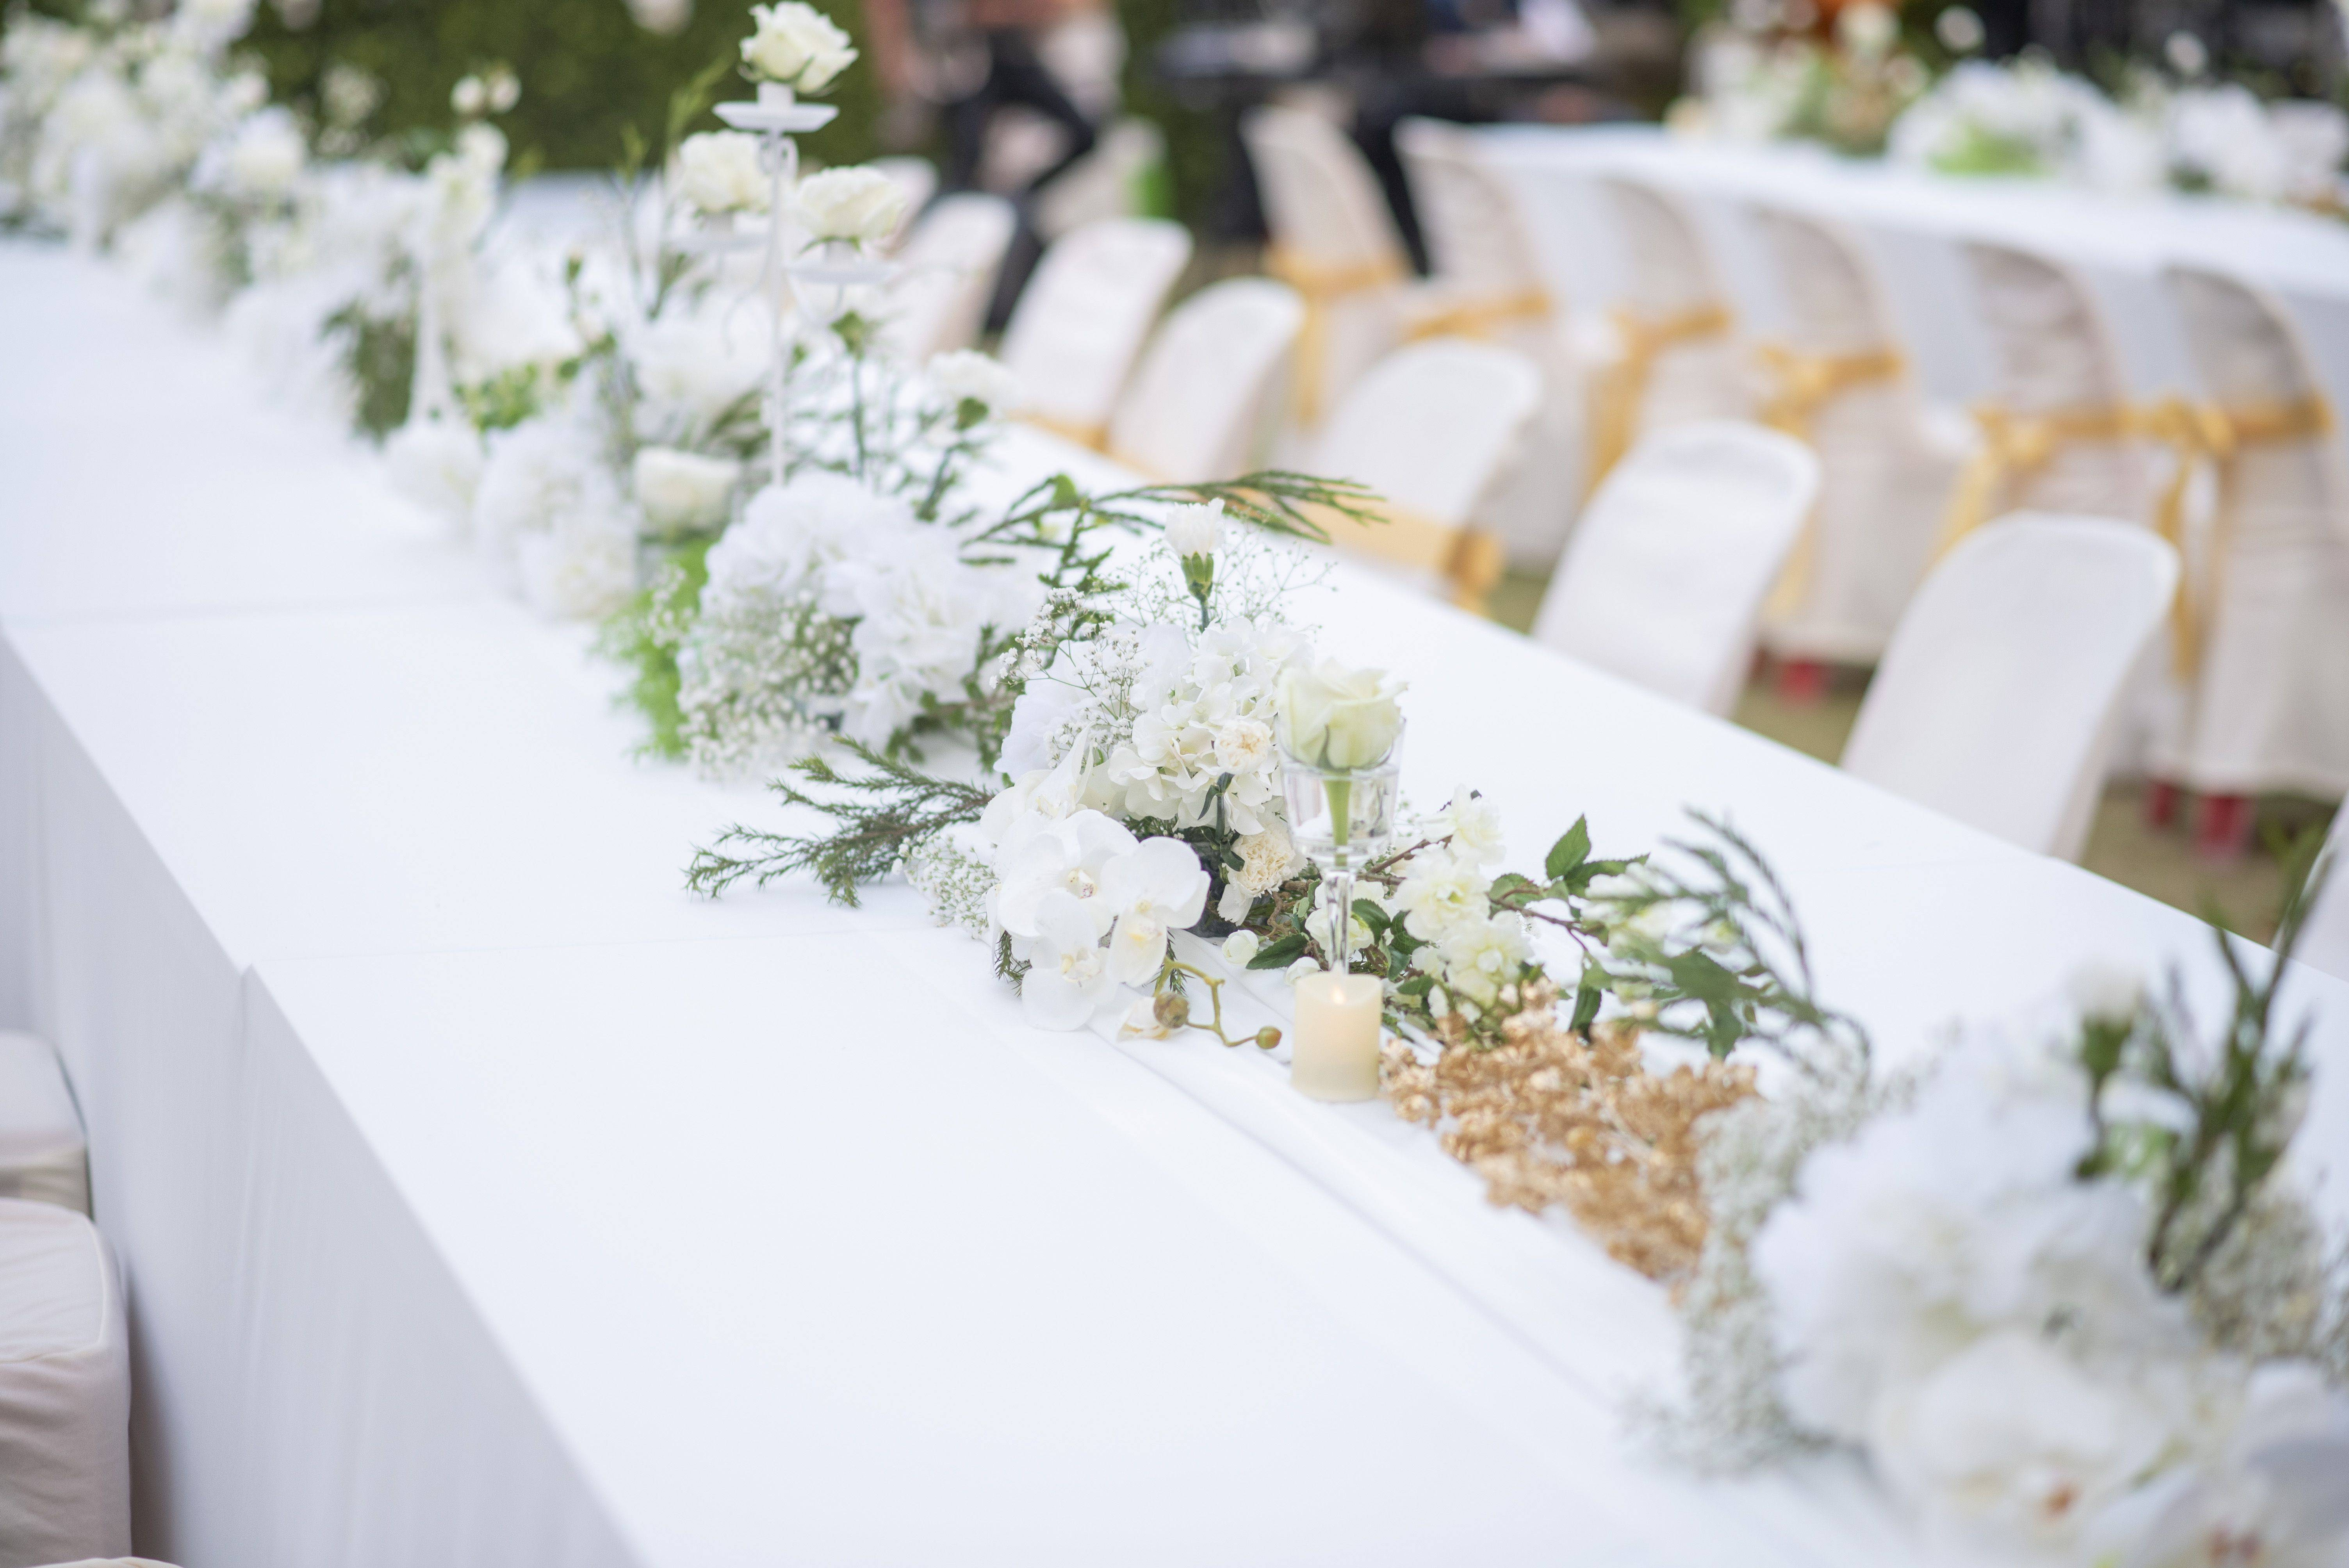 close up of flowers on table at wedding ceremony royalty free image